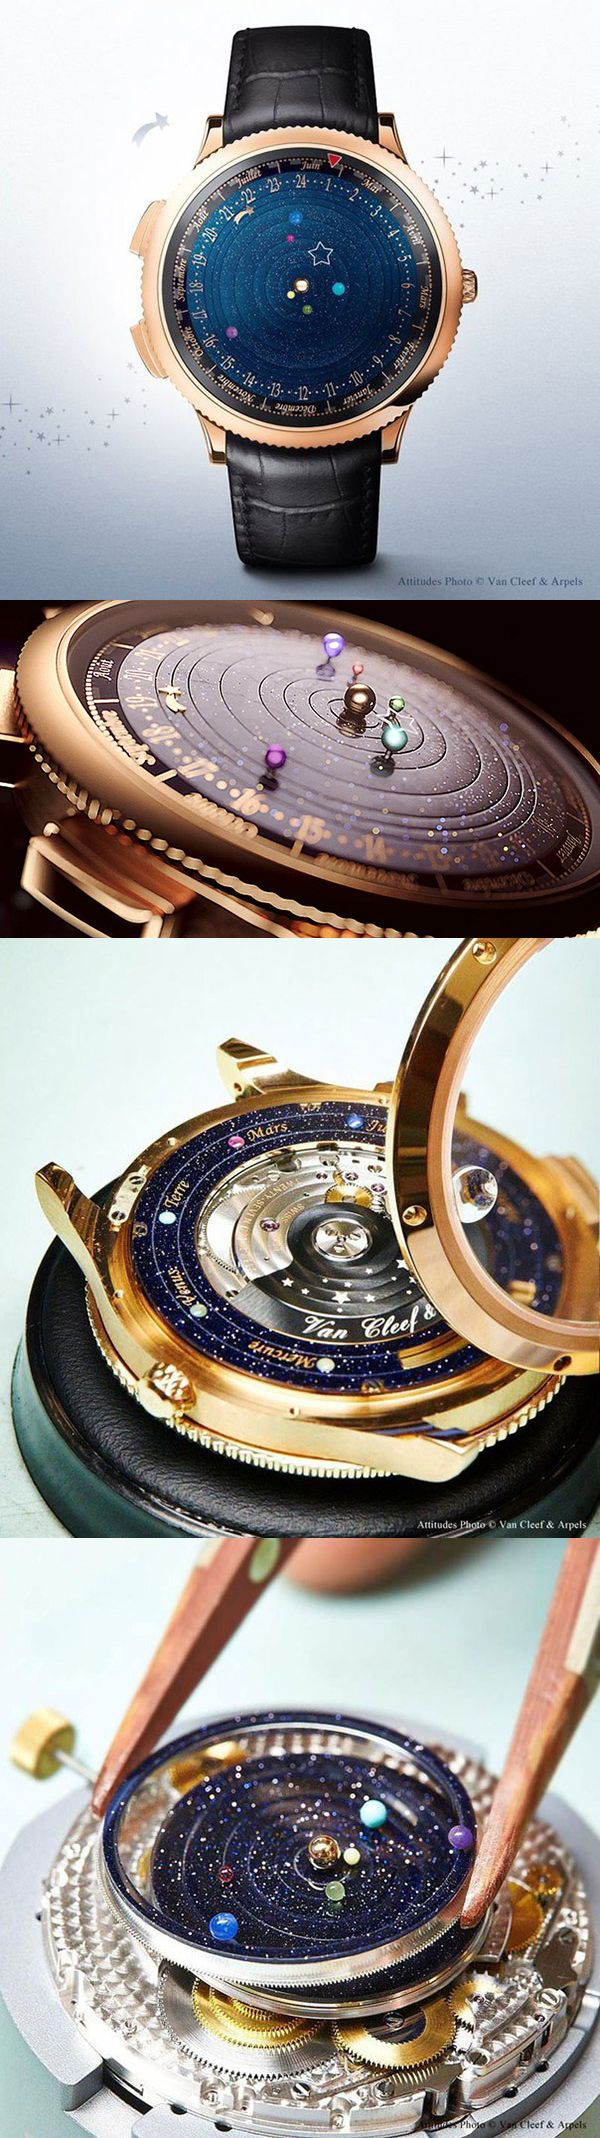 I can't live without this!!!Midnight Planétarium|planets / star / Milky Way / the Galaxy / watch